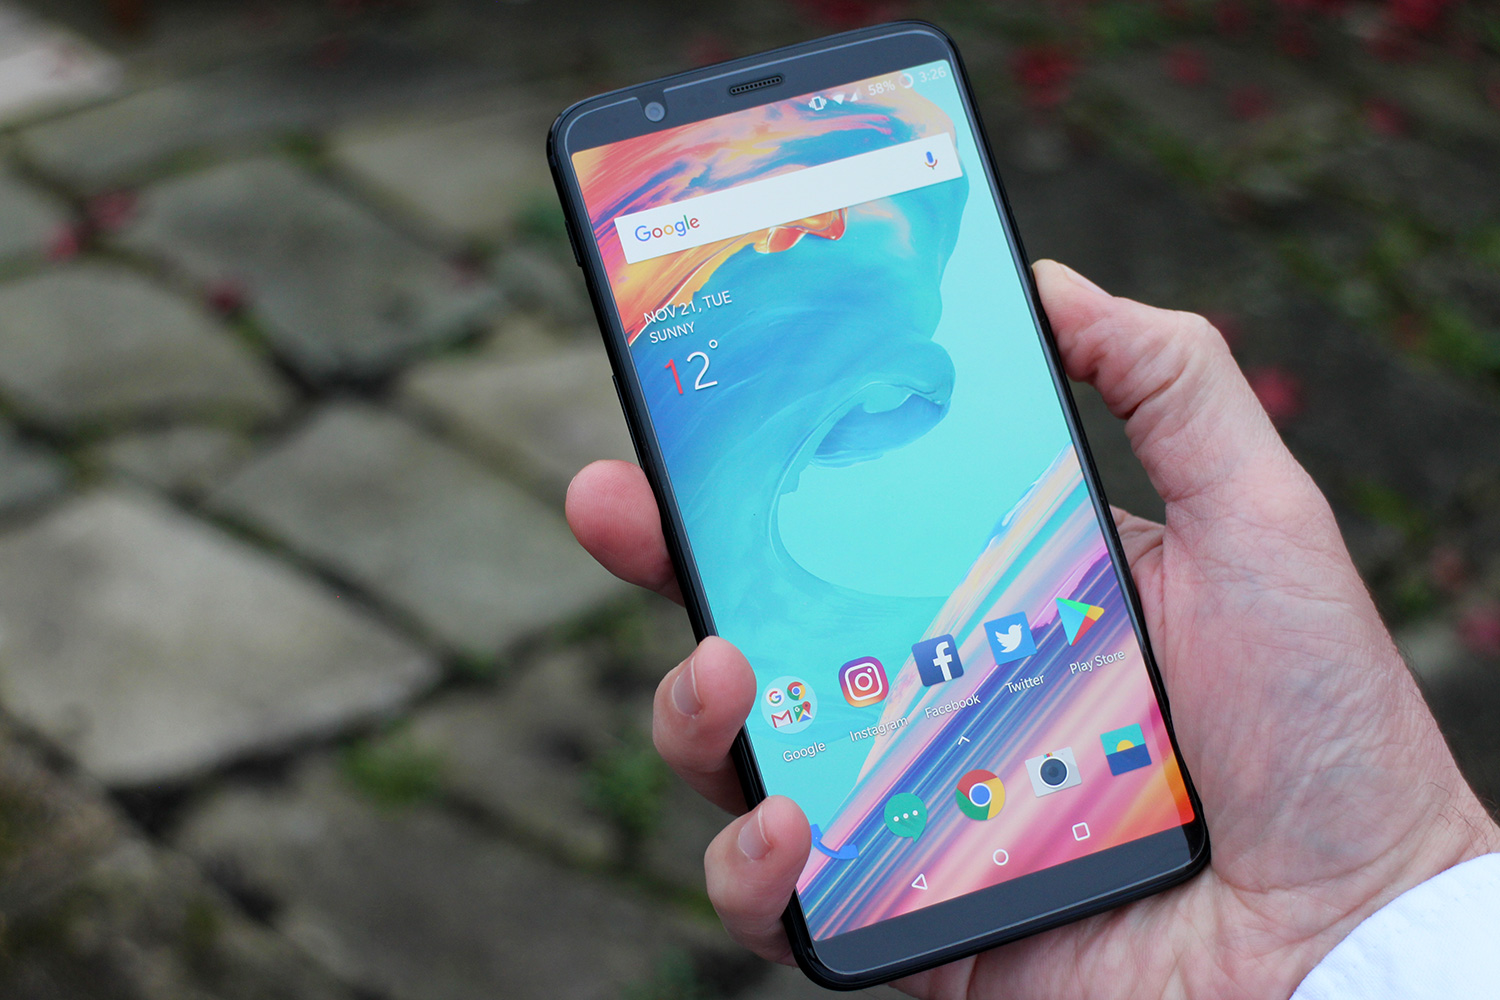 OnePlus 6 With Snapdragon 845 Chipset May Launch in Q2 2018